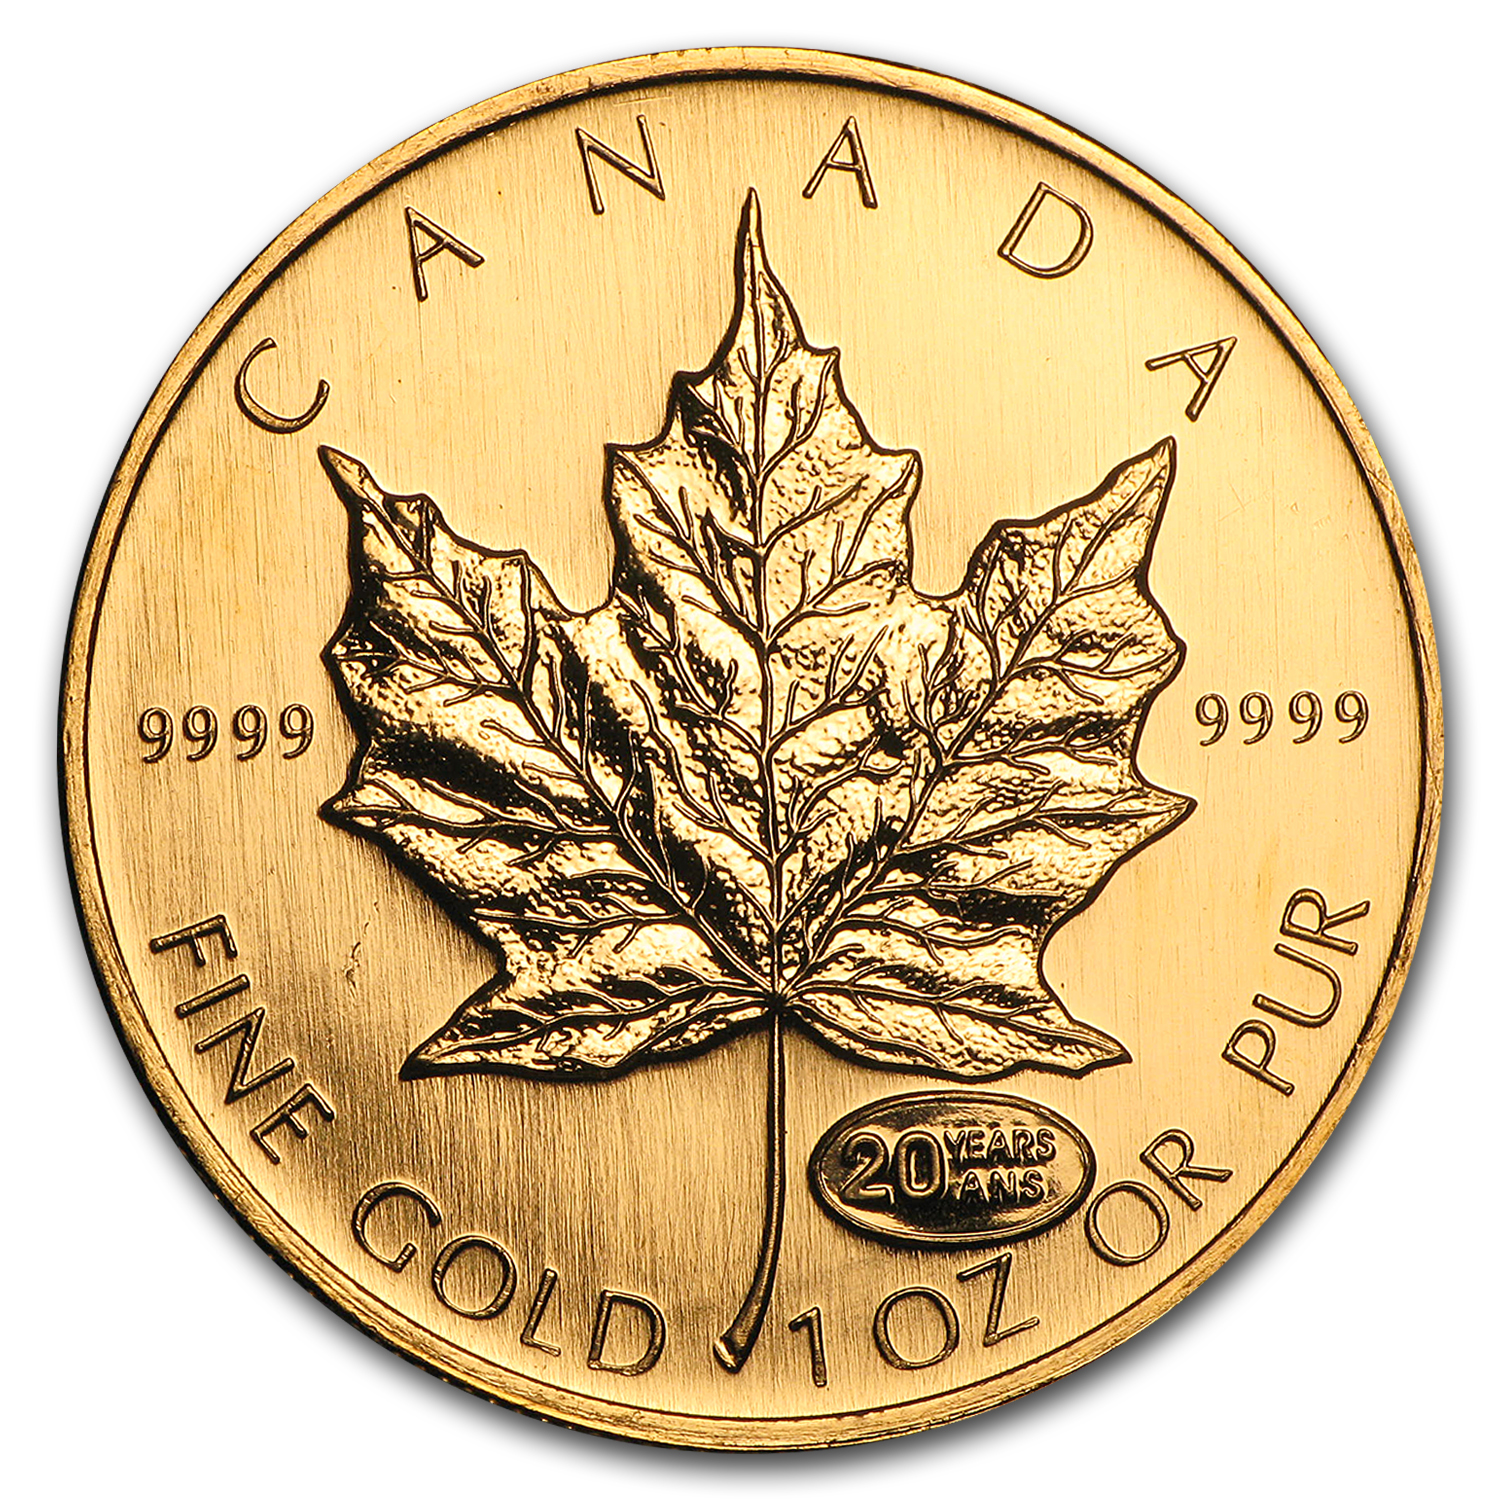 1999 1 oz Gold Canadian Maple Leaf - Brilliant Uncirculated